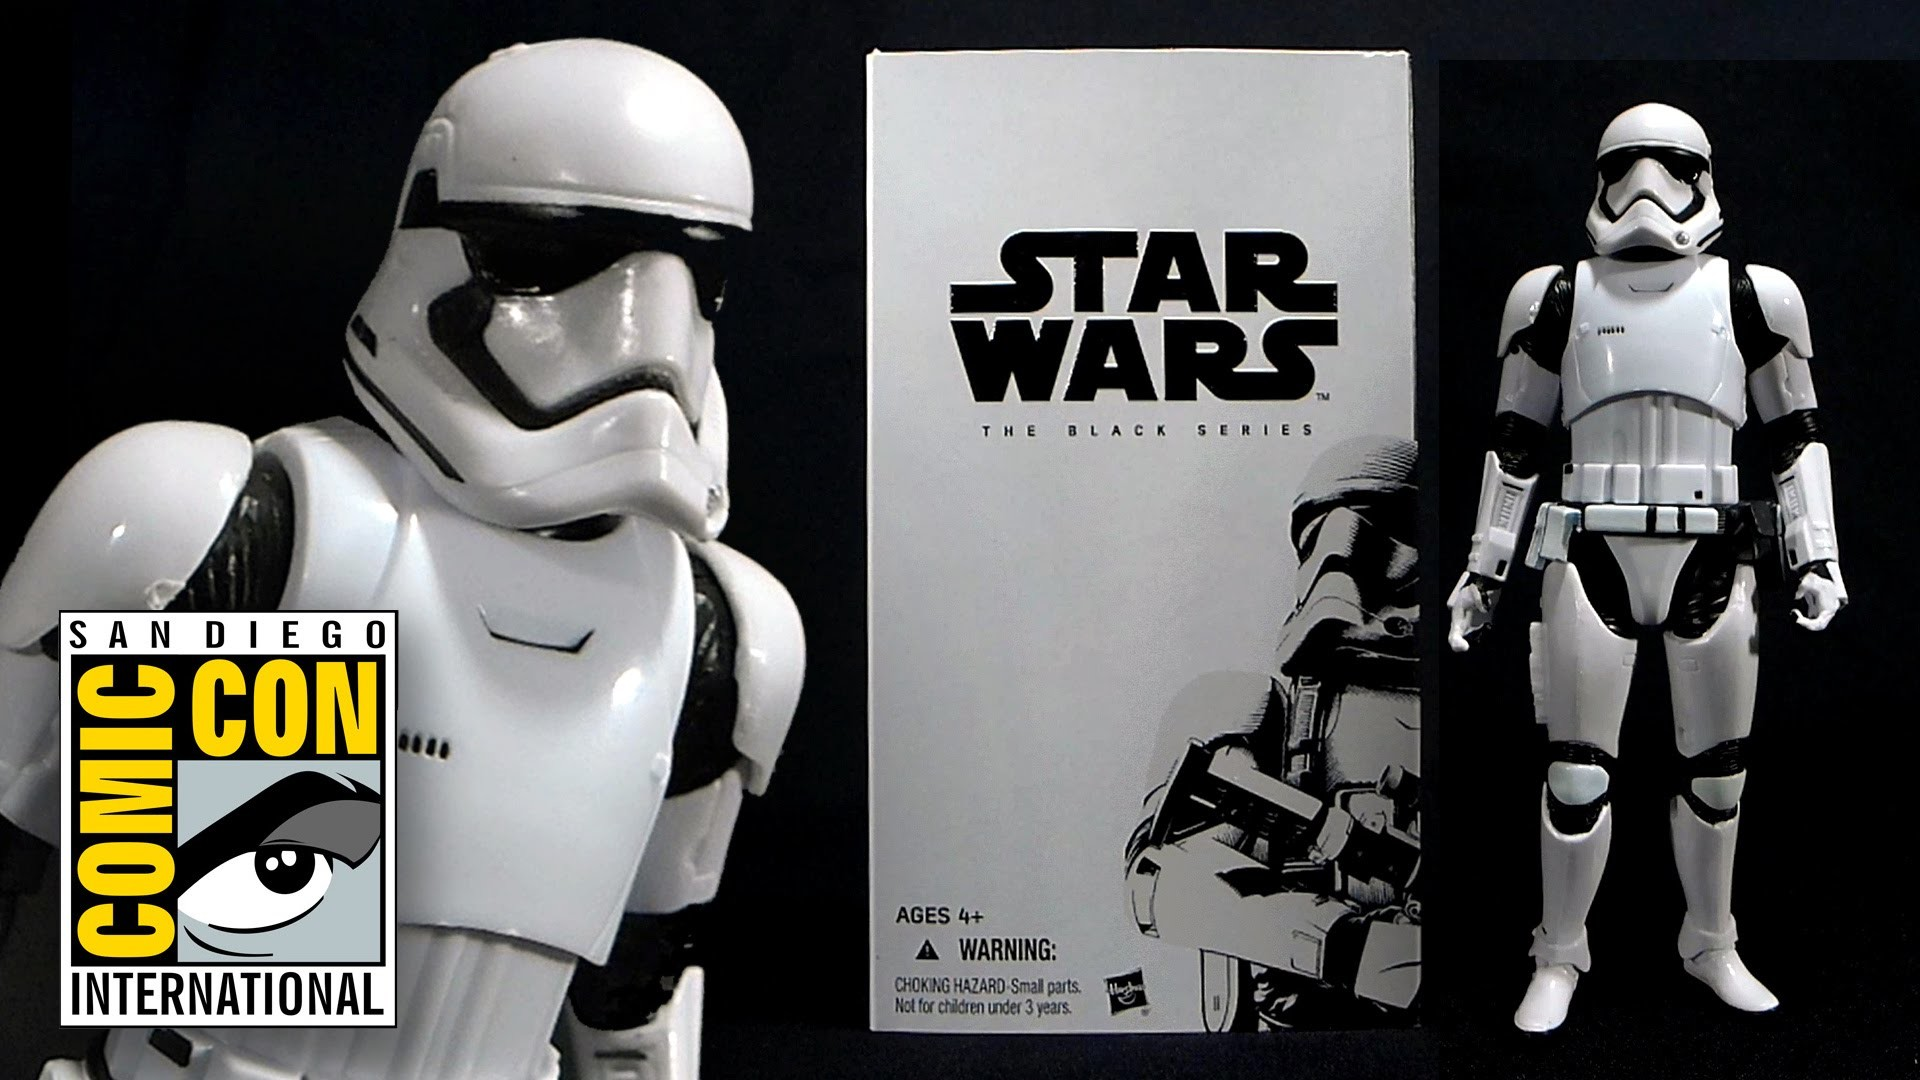 SDCC 2015 Star Wars: The Force Awakens First Order Stormtrooper Figure!